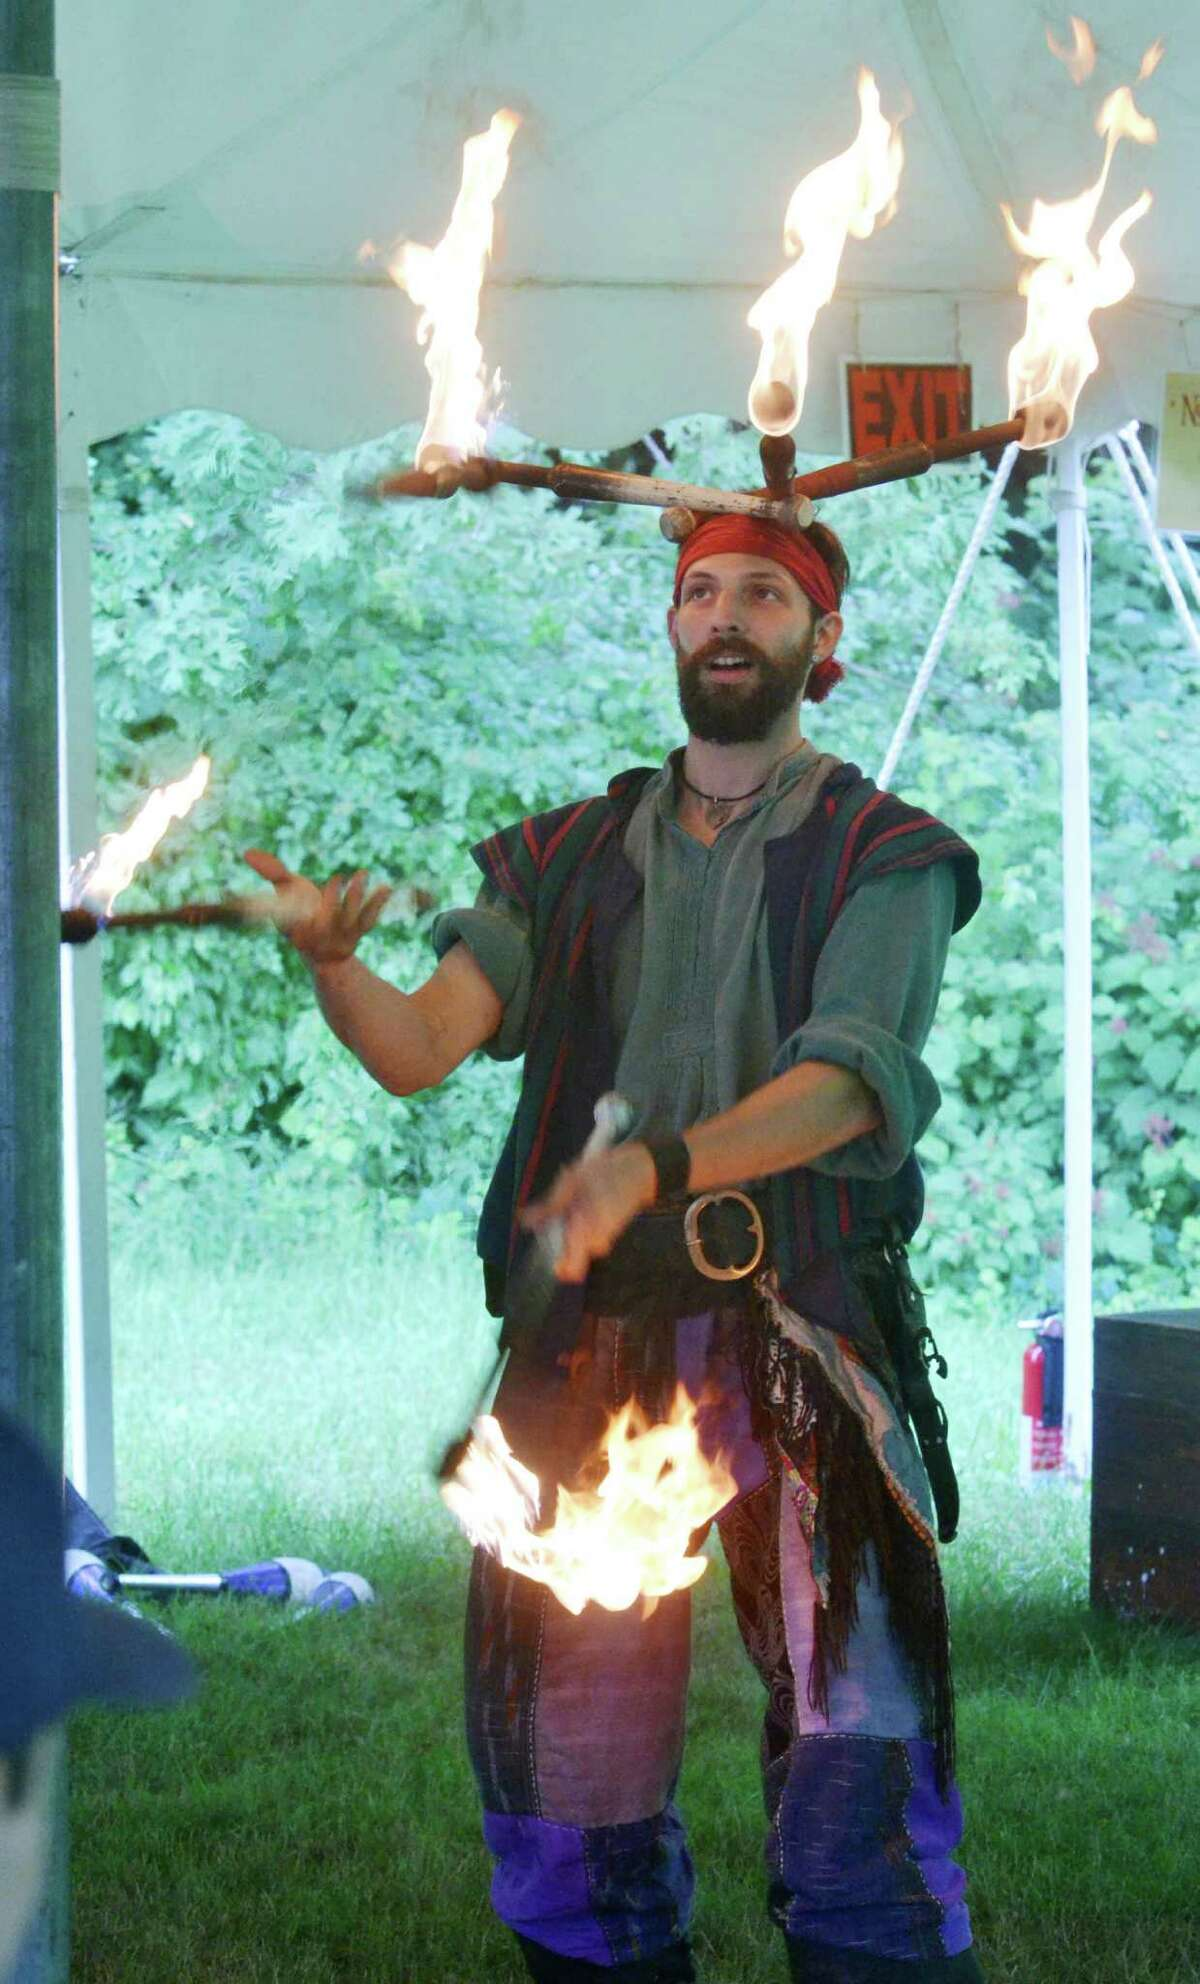 Chris Abbot, from South Plainville, N.J., balances torches on his head while simultaneously jugging fire at the Midsummer Fantasy Reinassance Faire at Warsaw Park in Ansonia, Conn. on June 28, 2015. The last weekend to visit the faire is July 4-5, 2015 from 11 a.m to 6:30 p.m.